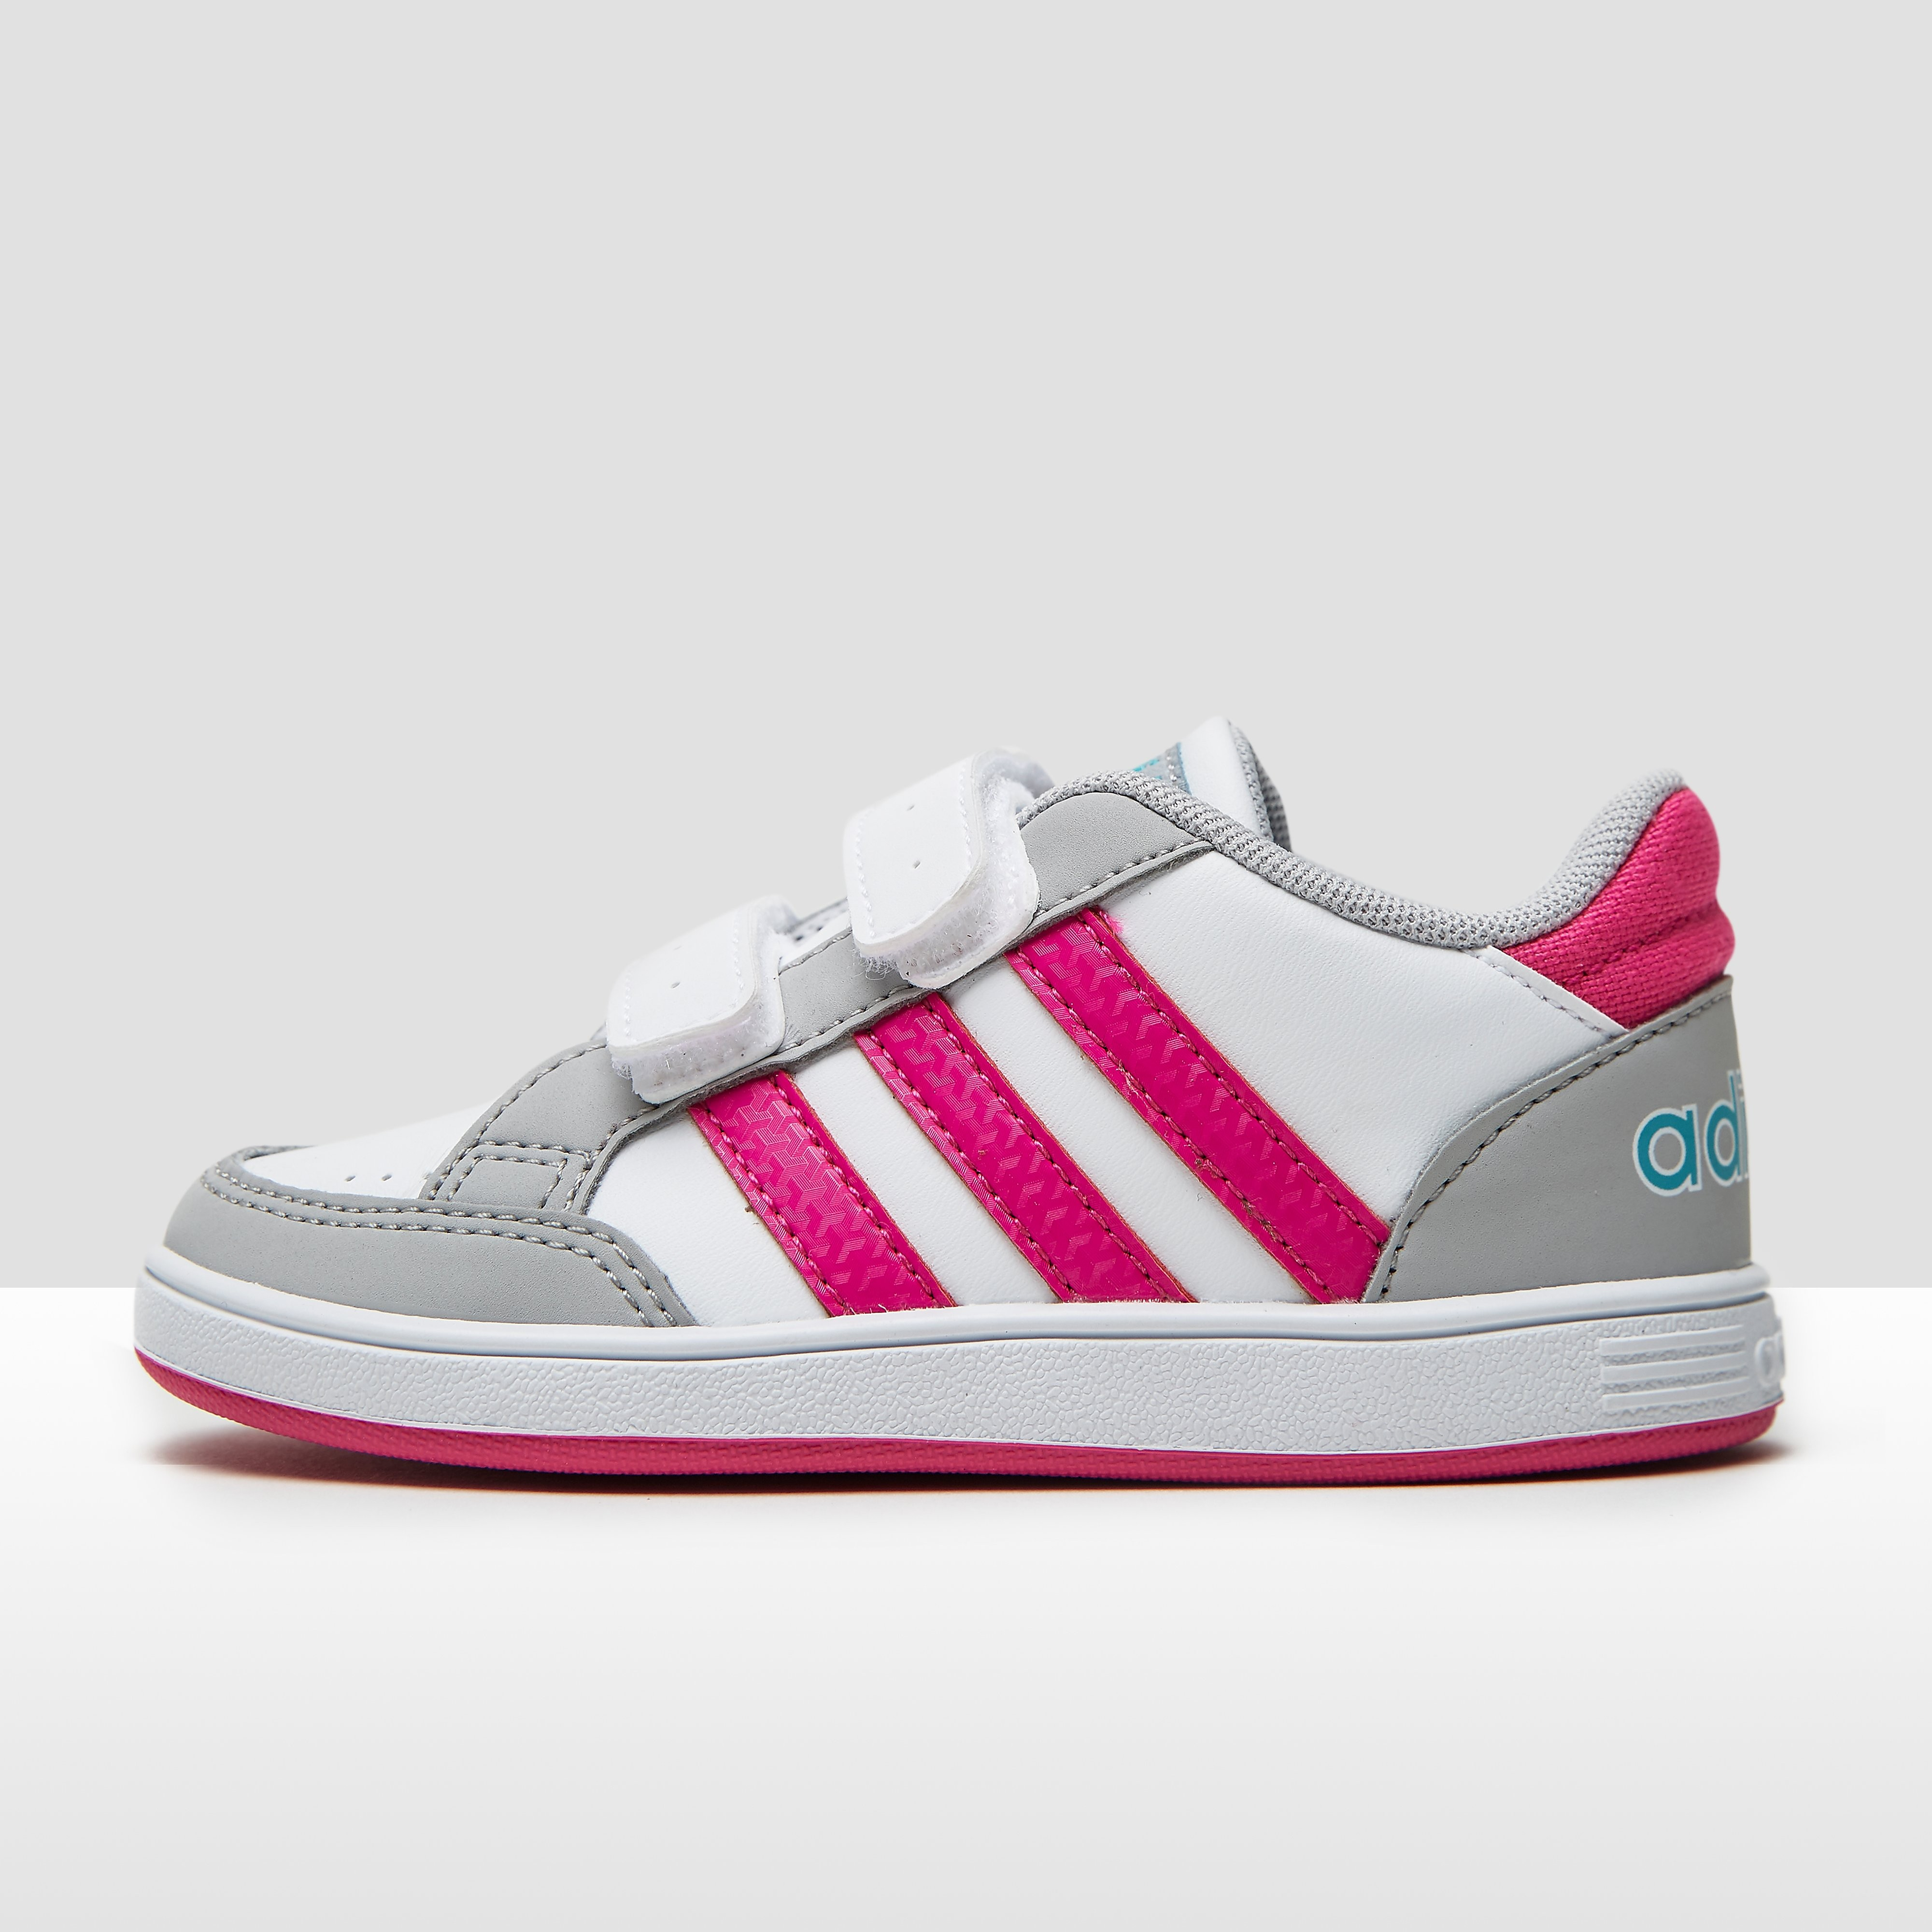 ADIDAS HOOPS SNEAKERS WIT/ROZE BABY